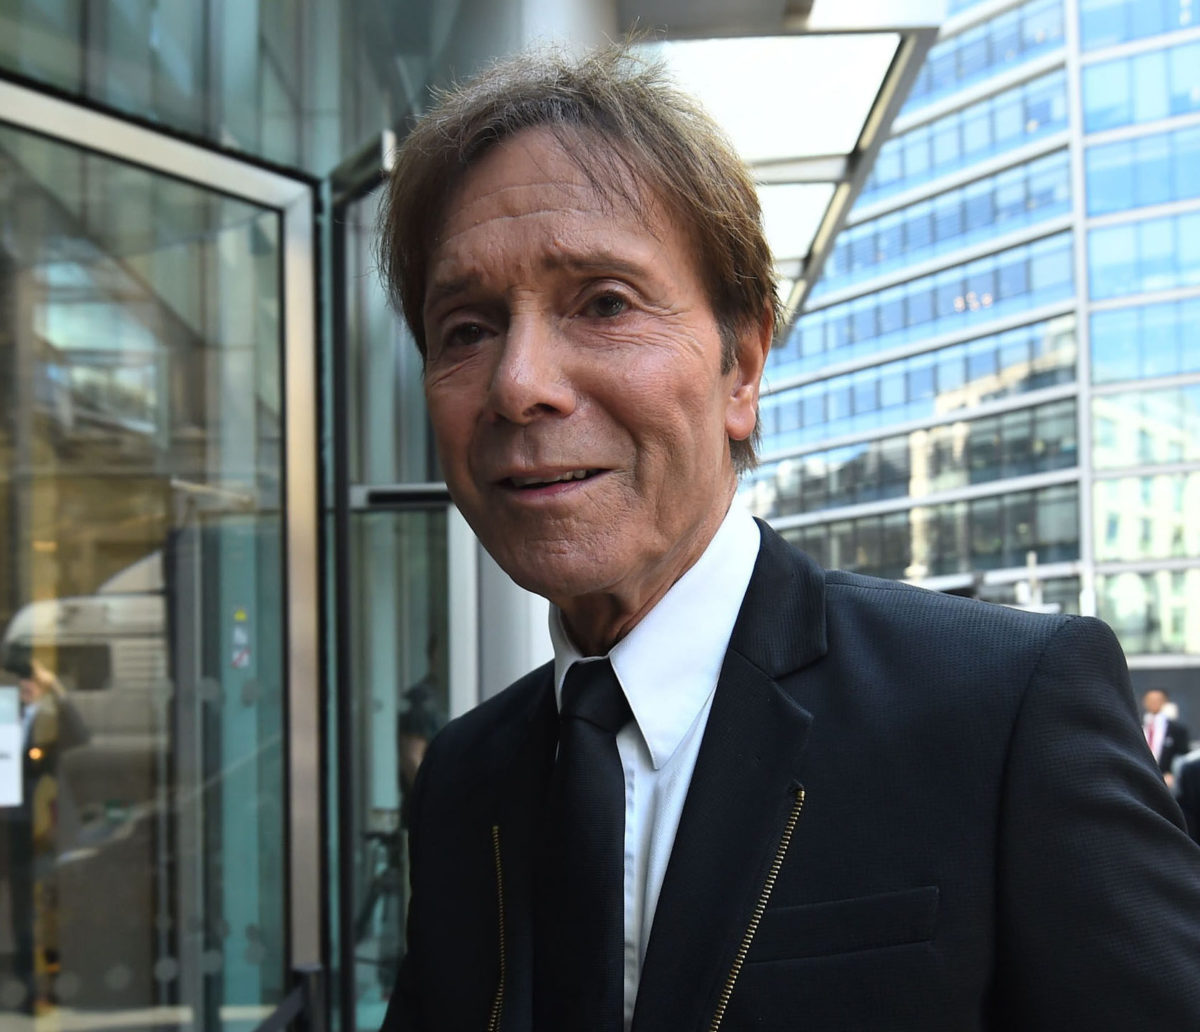 BBC reporter told editors it was 'possible' police felt 'pressured' into co-operating over coverage of raid on Cliff Richard's home, judge hears